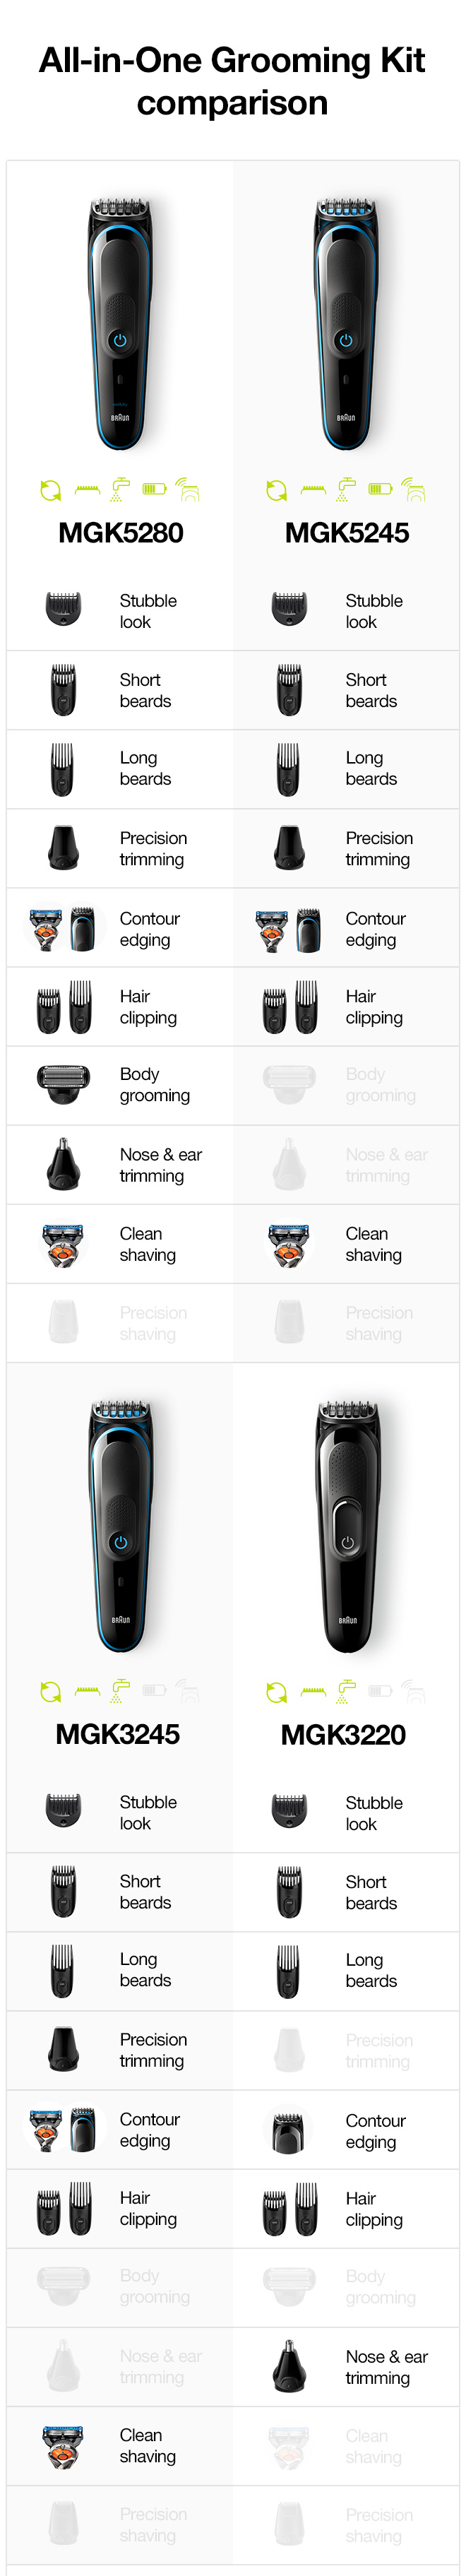 All-in-one grooming kit comparison